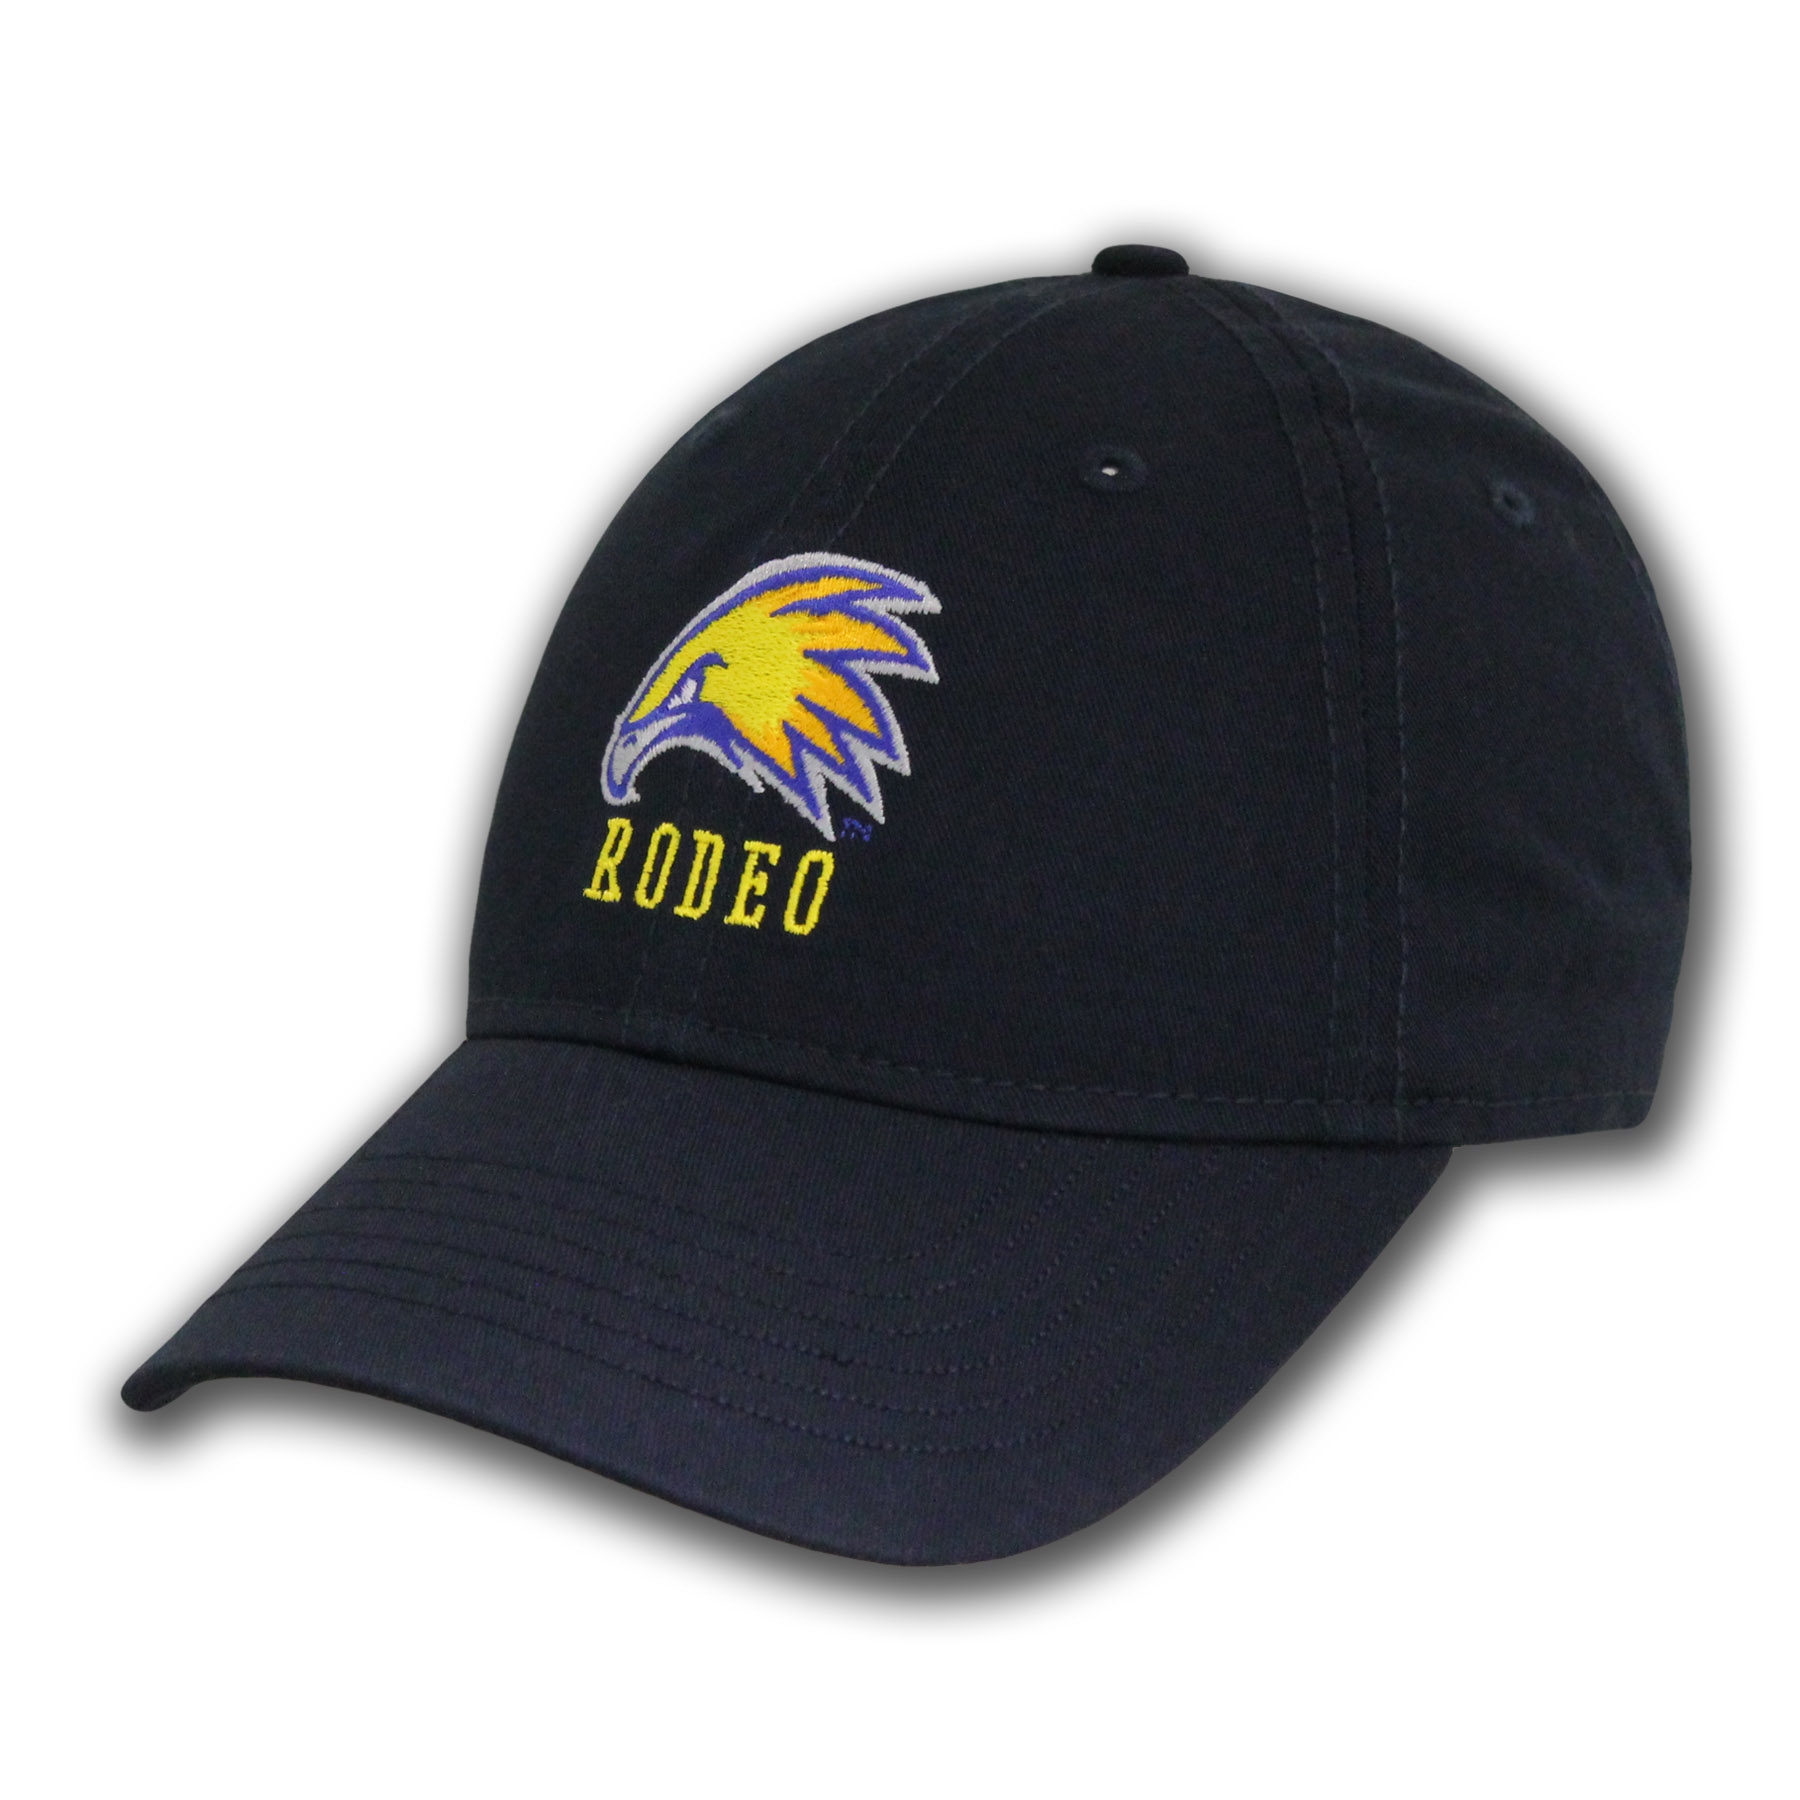 Eagles Rodeo Hat